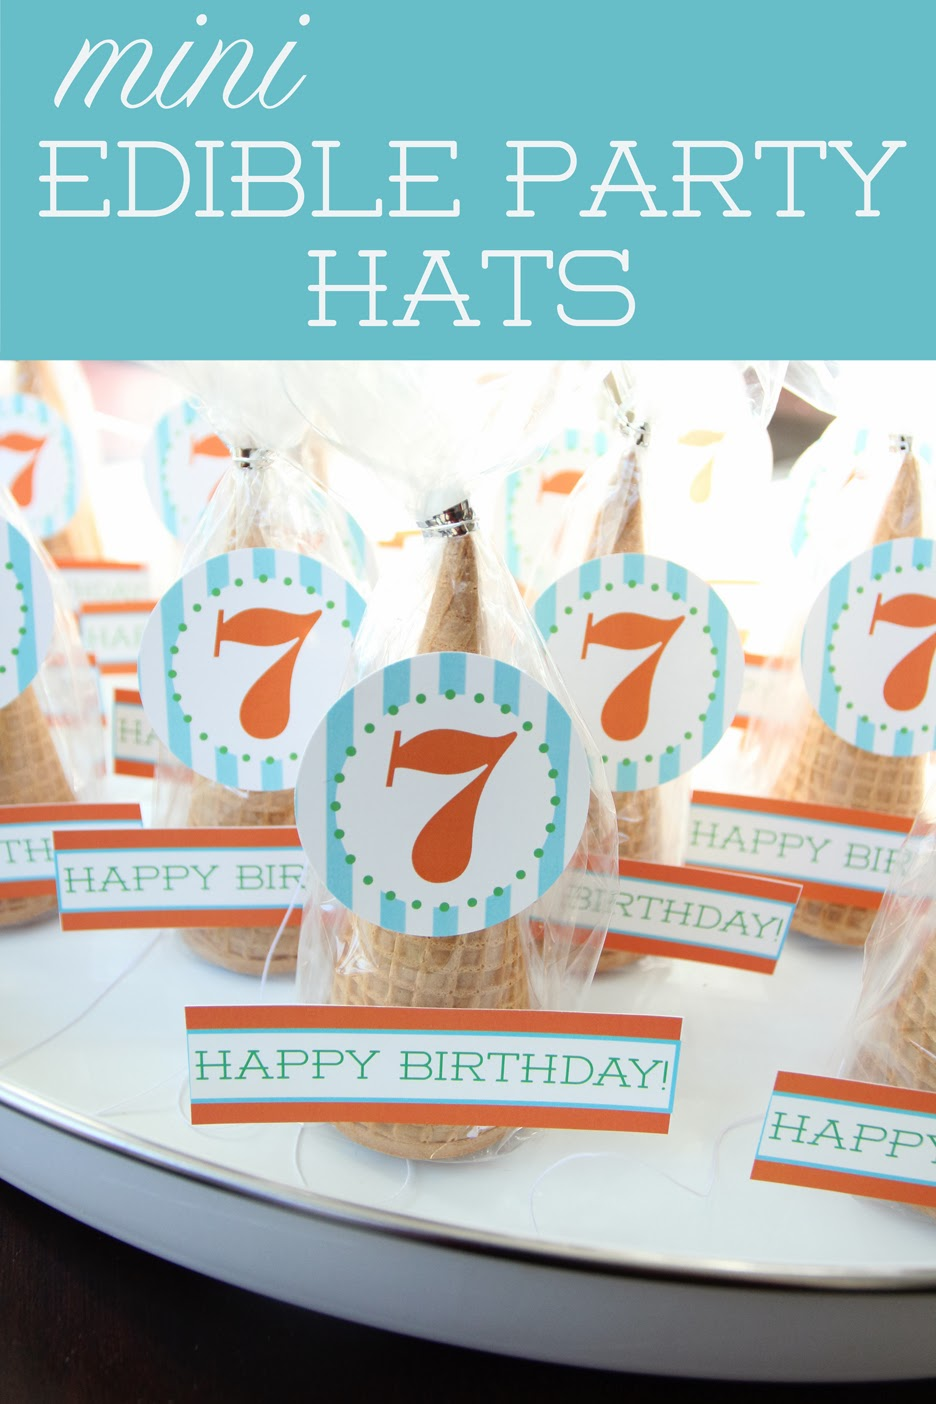 ... of Bliss: Mini Edible Party Hats and Free 7th Birthday Printables